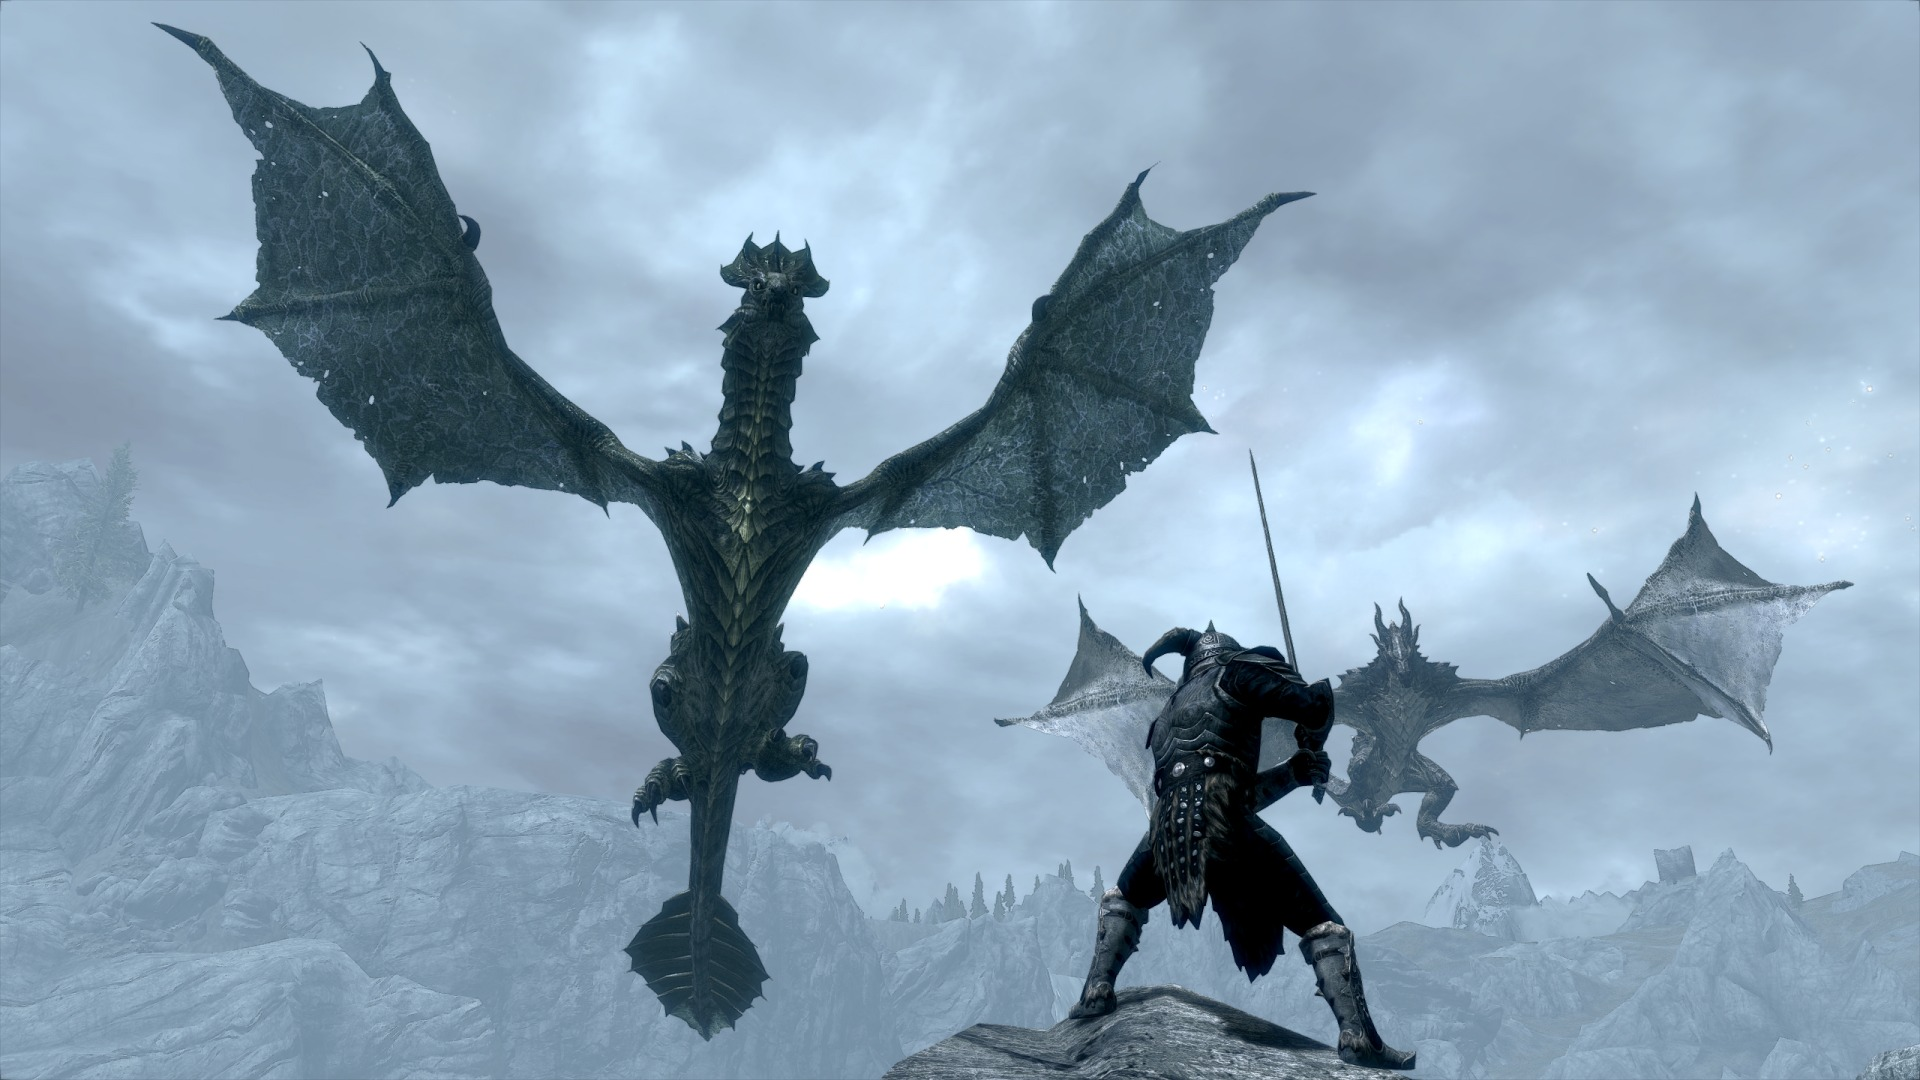 Wallpaper The Elder Scrolls V: Skyrim two dragon and warrior